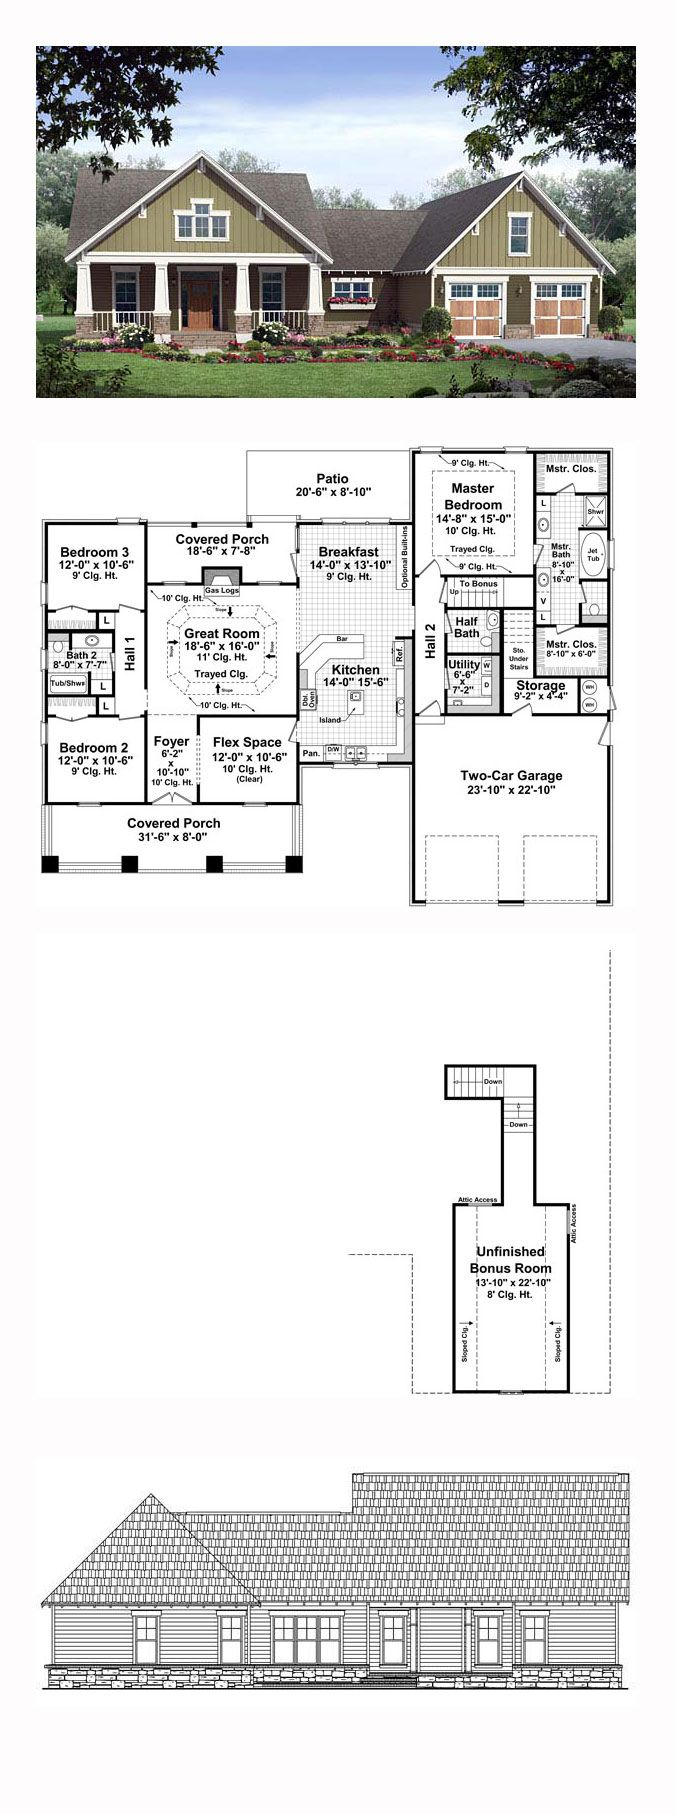 25 best bungalow house plans ideas on pinterest bungalow floor bungalow house plan 59149 total living area 2067 sq ft 3